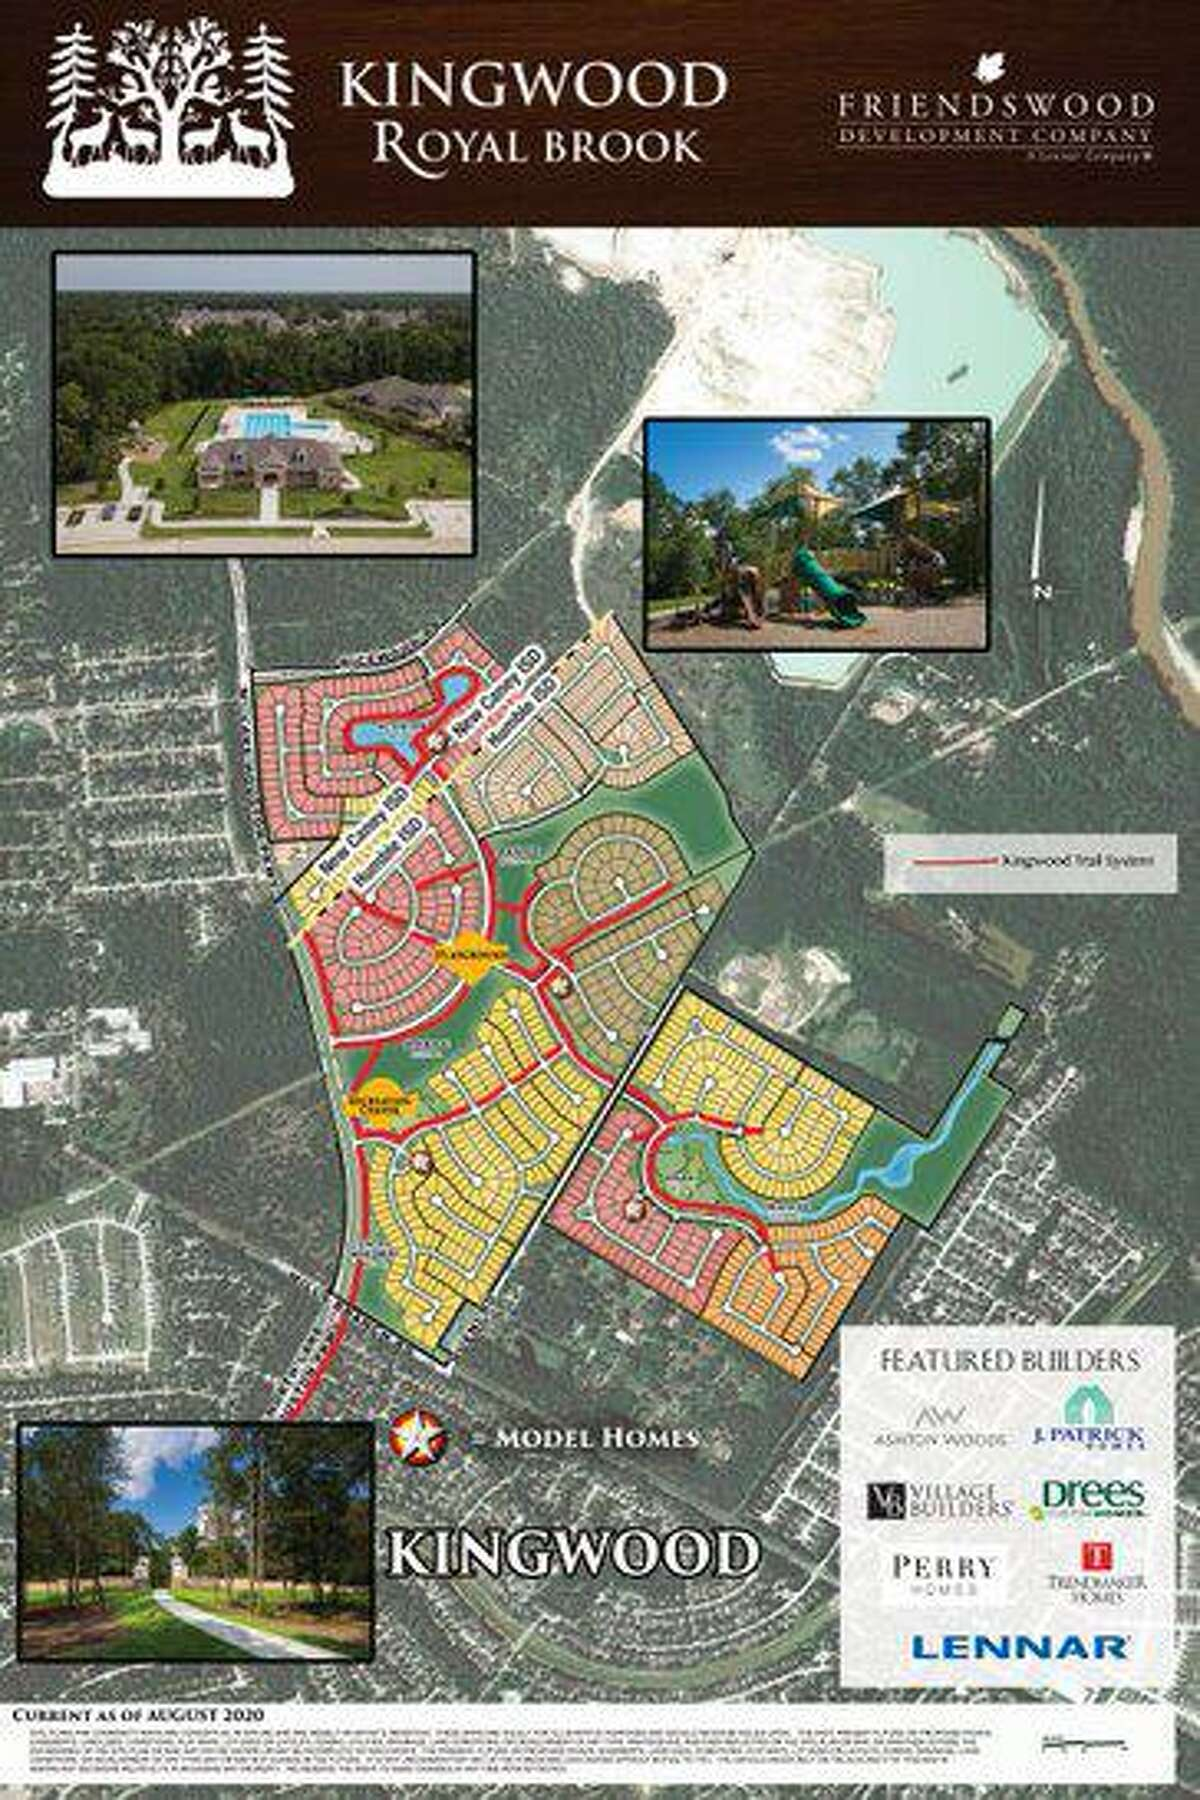 The final piece of the Kingwood puzzle is nearly complete with the completion of Royal Brook.